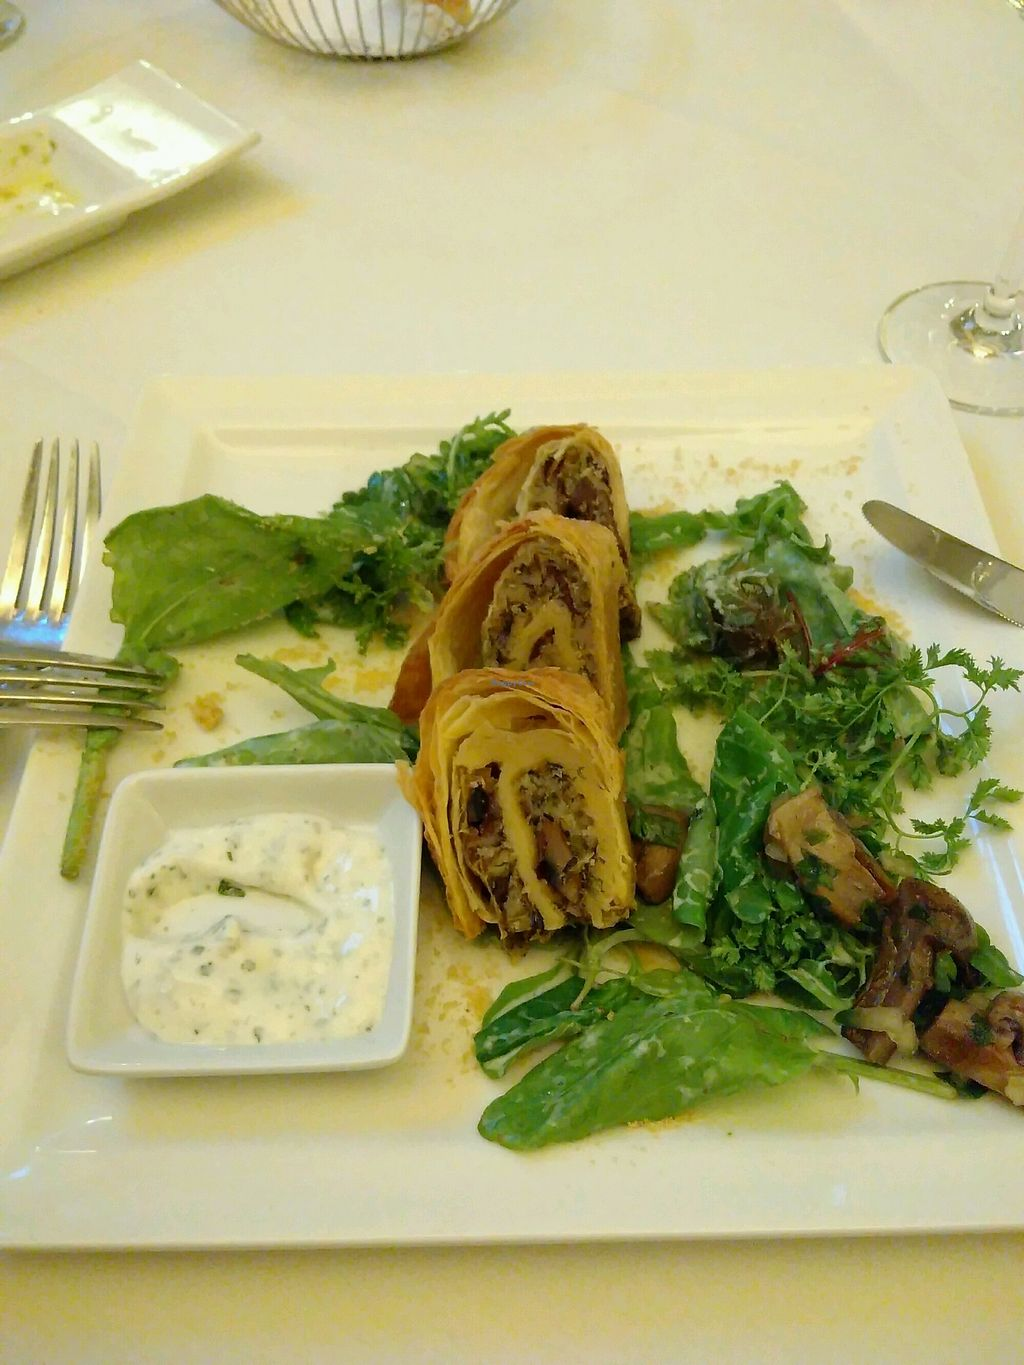 """Photo of Ringhotel Nassau-Oranien  by <a href=""""/members/profile/UDth"""">UDth</a> <br/>Waldpilzstrudel mit Dip und gebratenen Champignons auf Salat <br/> October 16, 2017  - <a href='/contact/abuse/image/102587/315951'>Report</a>"""